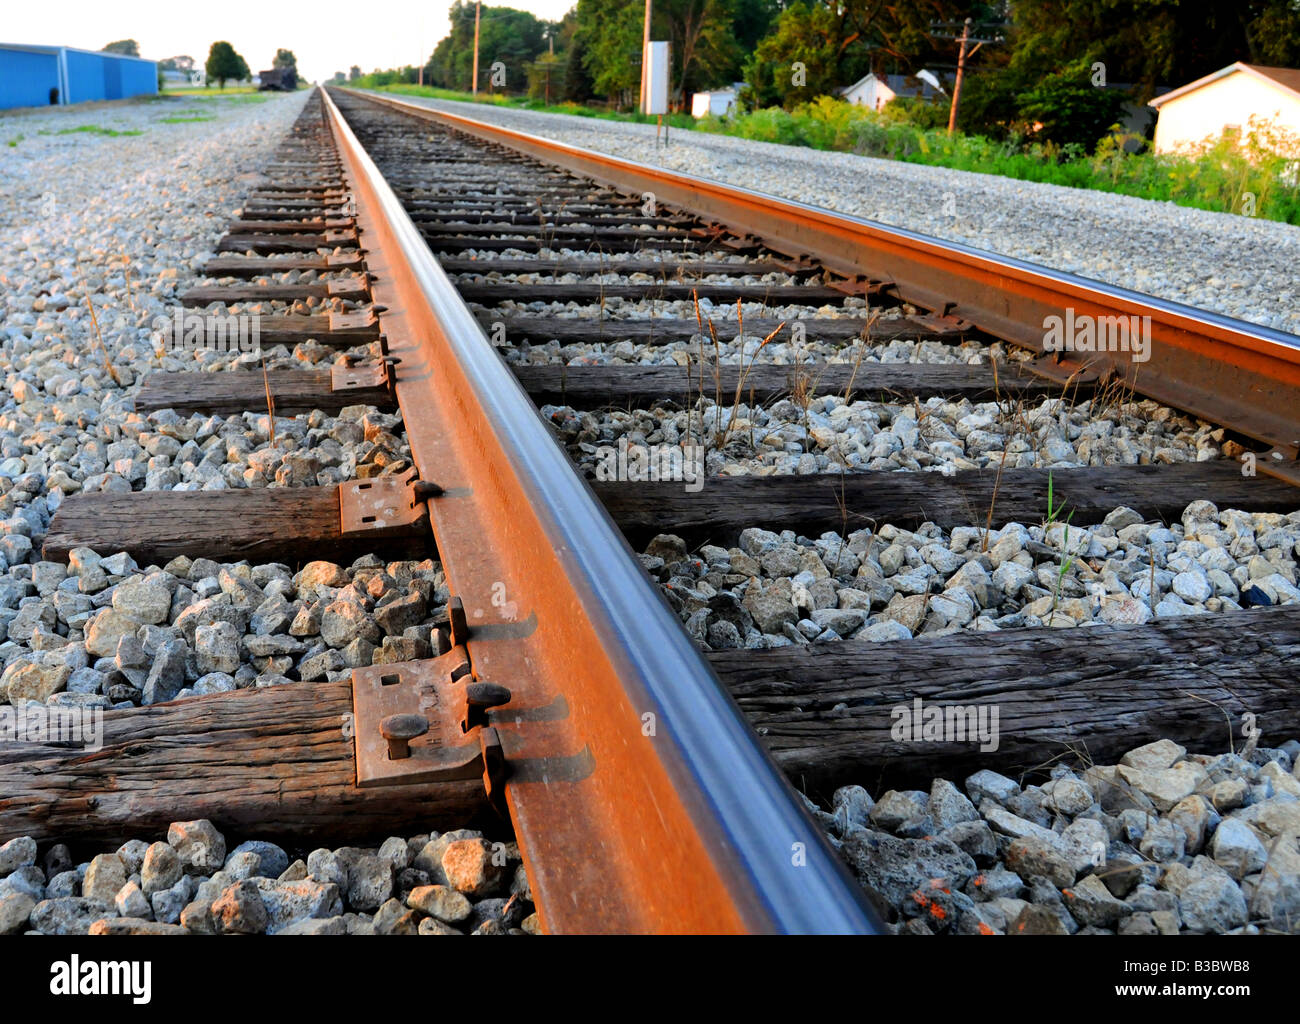 Railroad tracks - Stock Image